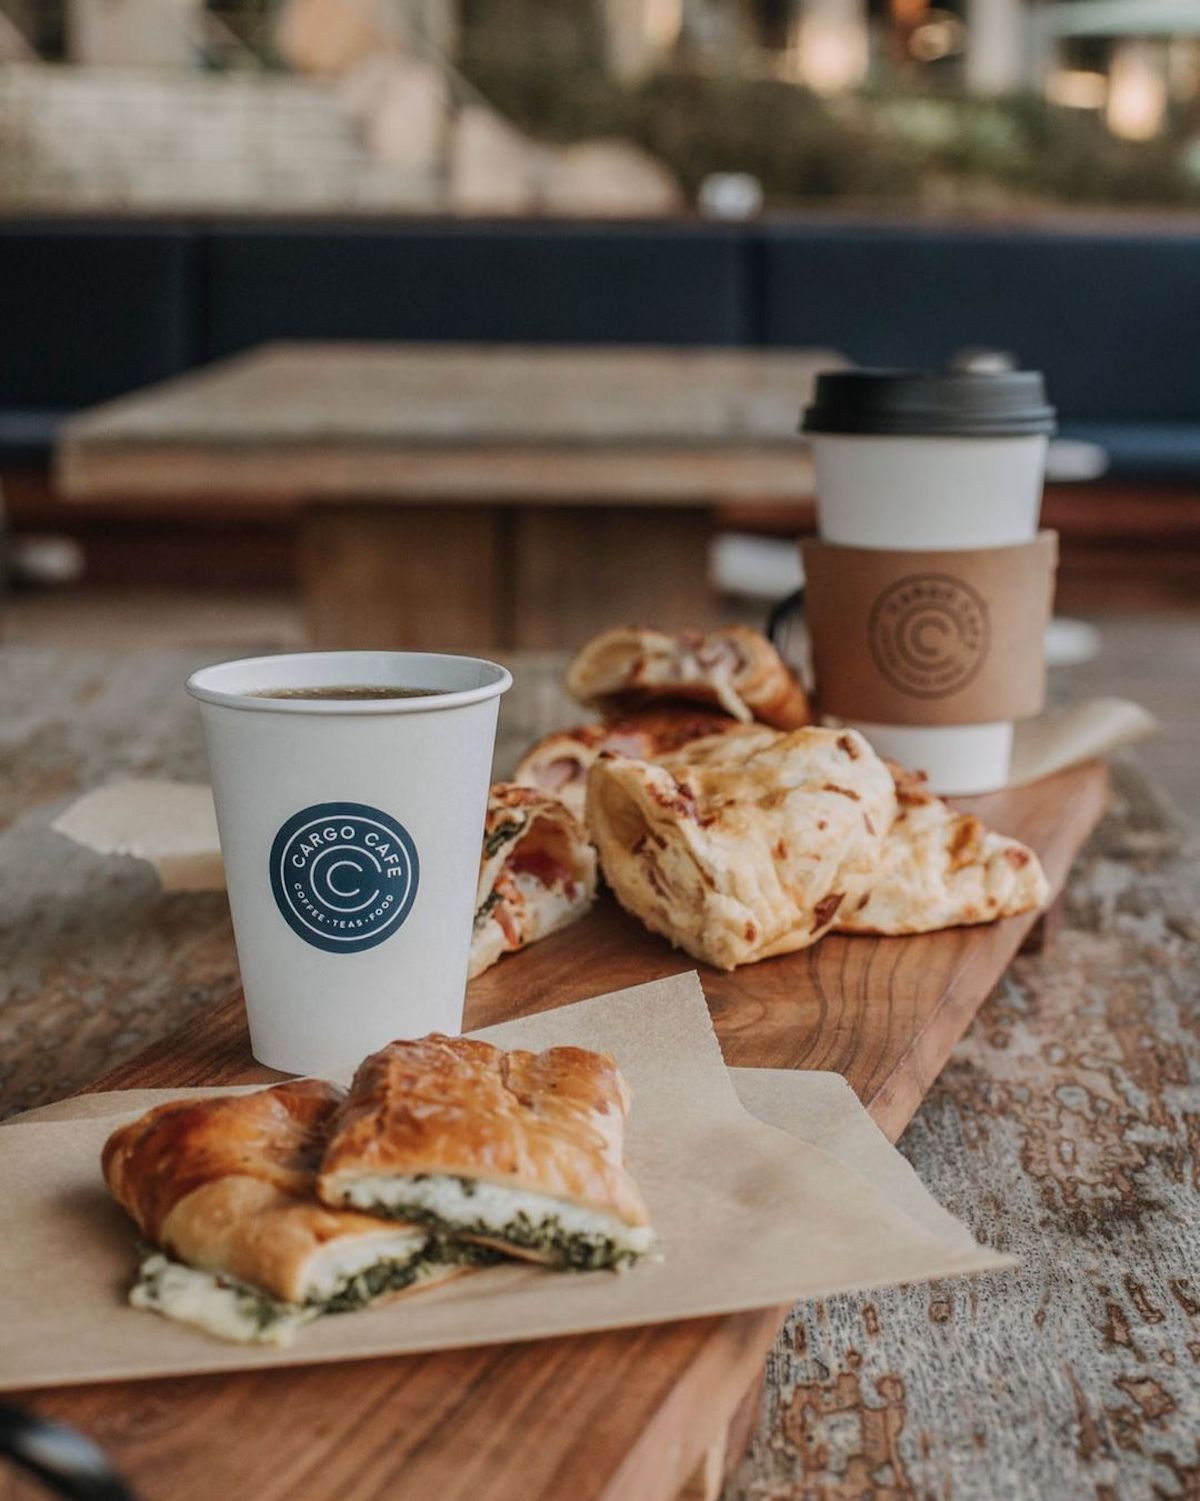 Cargo Café to Bring 'Mindful and Compassionate' Service to a Fourth Location